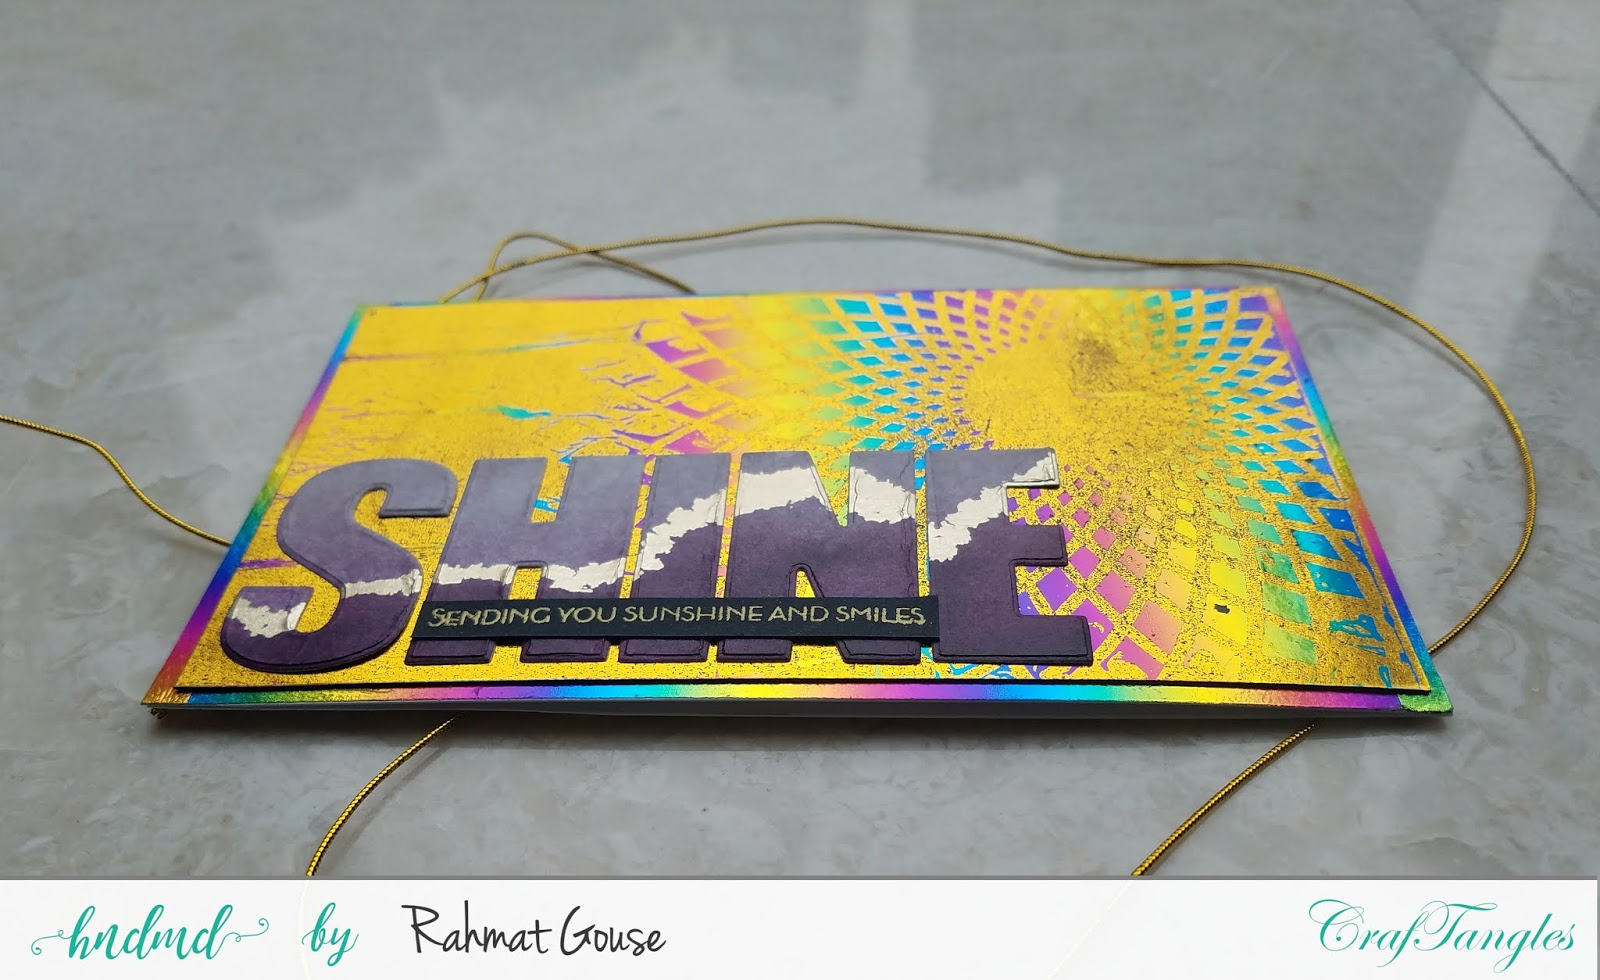 Double foiling using the negatives of stencils and foils - Rahmat 6